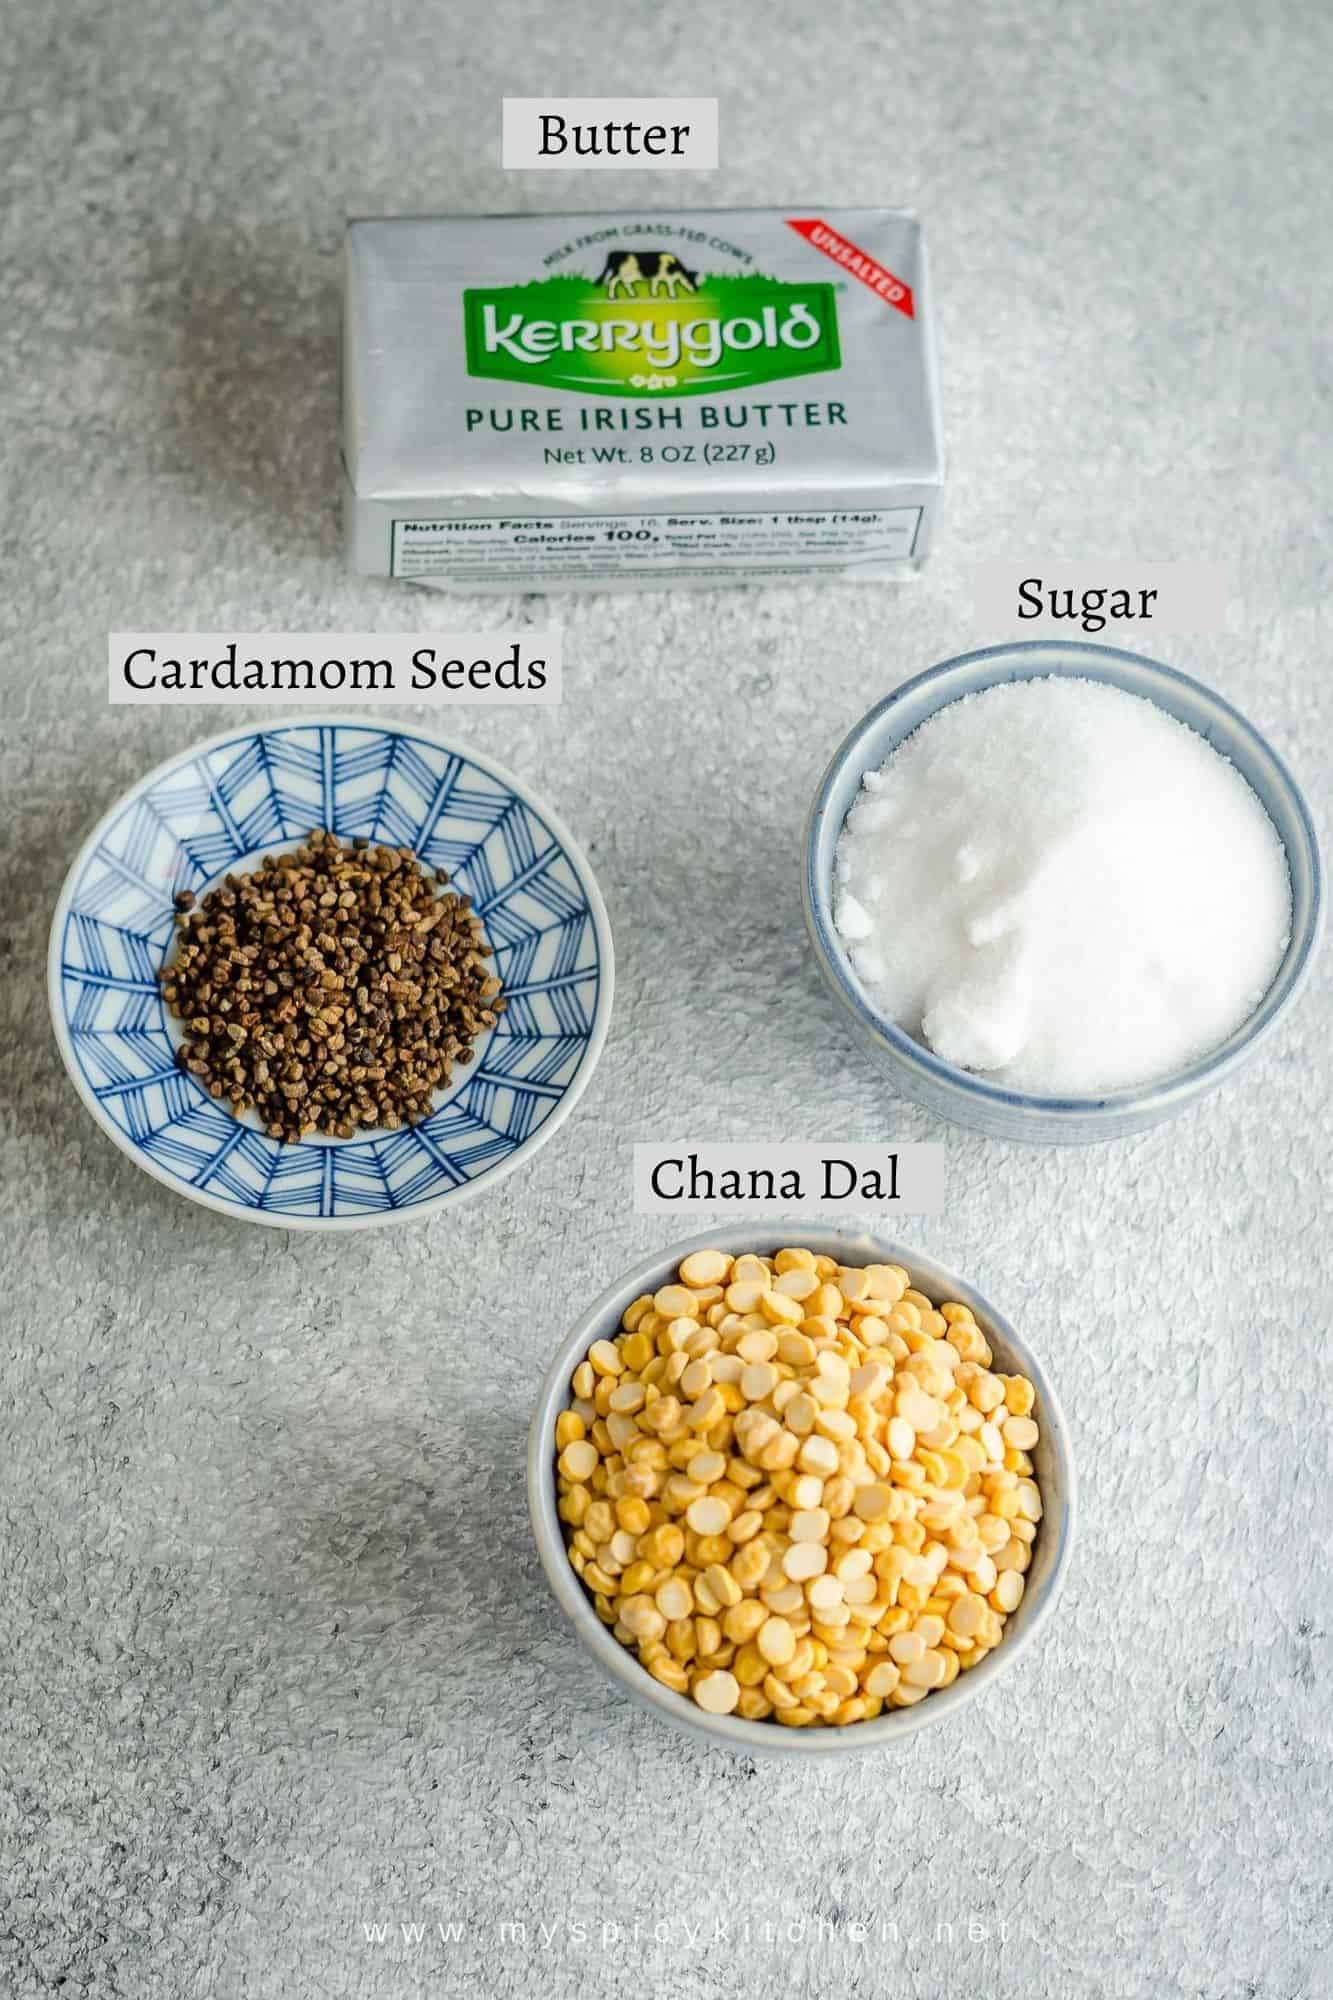 Ingredients for chana dal ladoo - chana dal sugar cardamom seeds and butter for ghee.